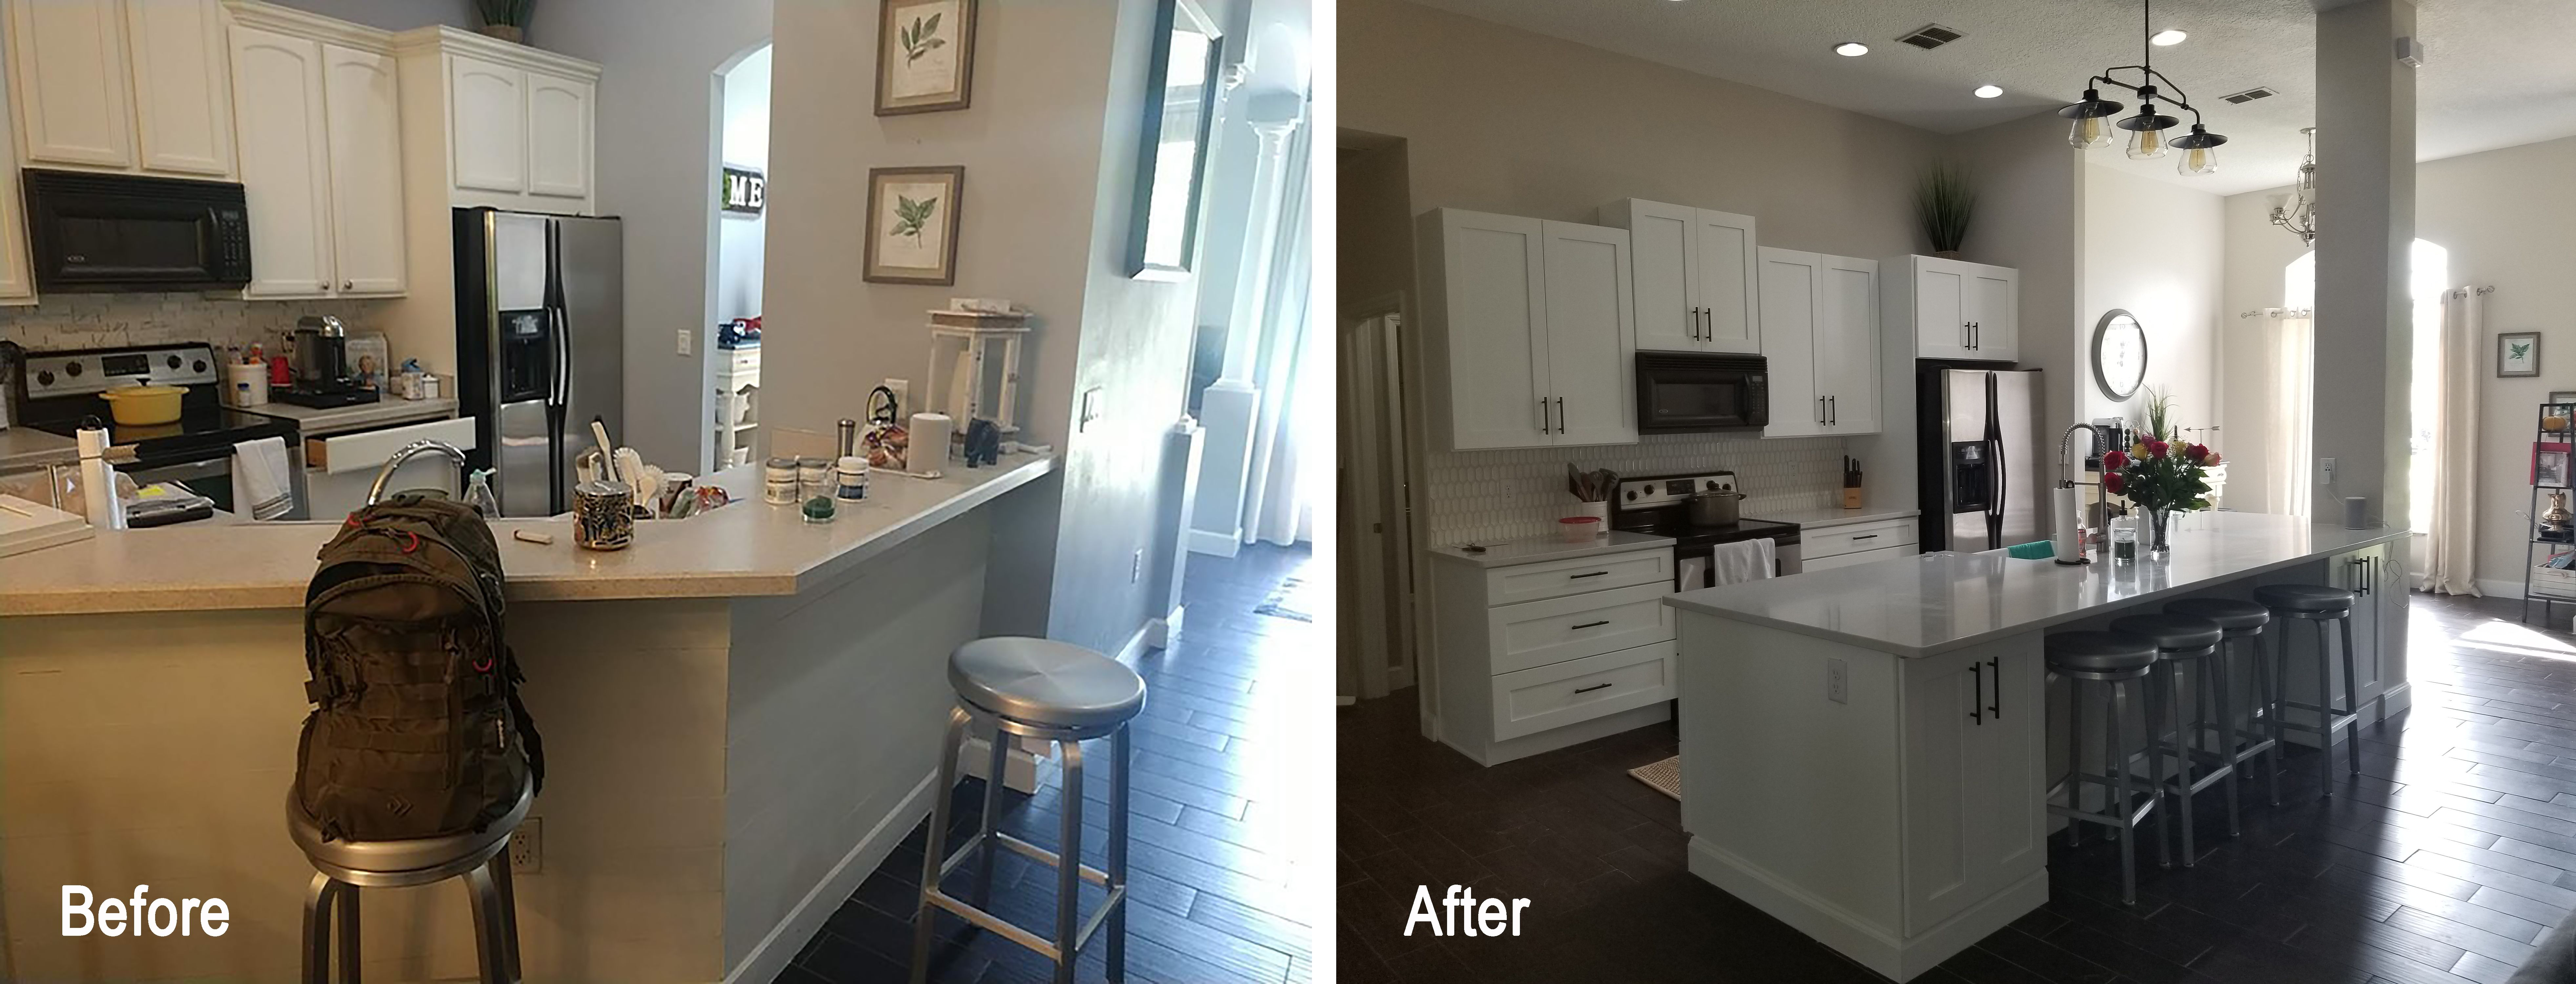 Check out this beautiful kitchen remodeling project we